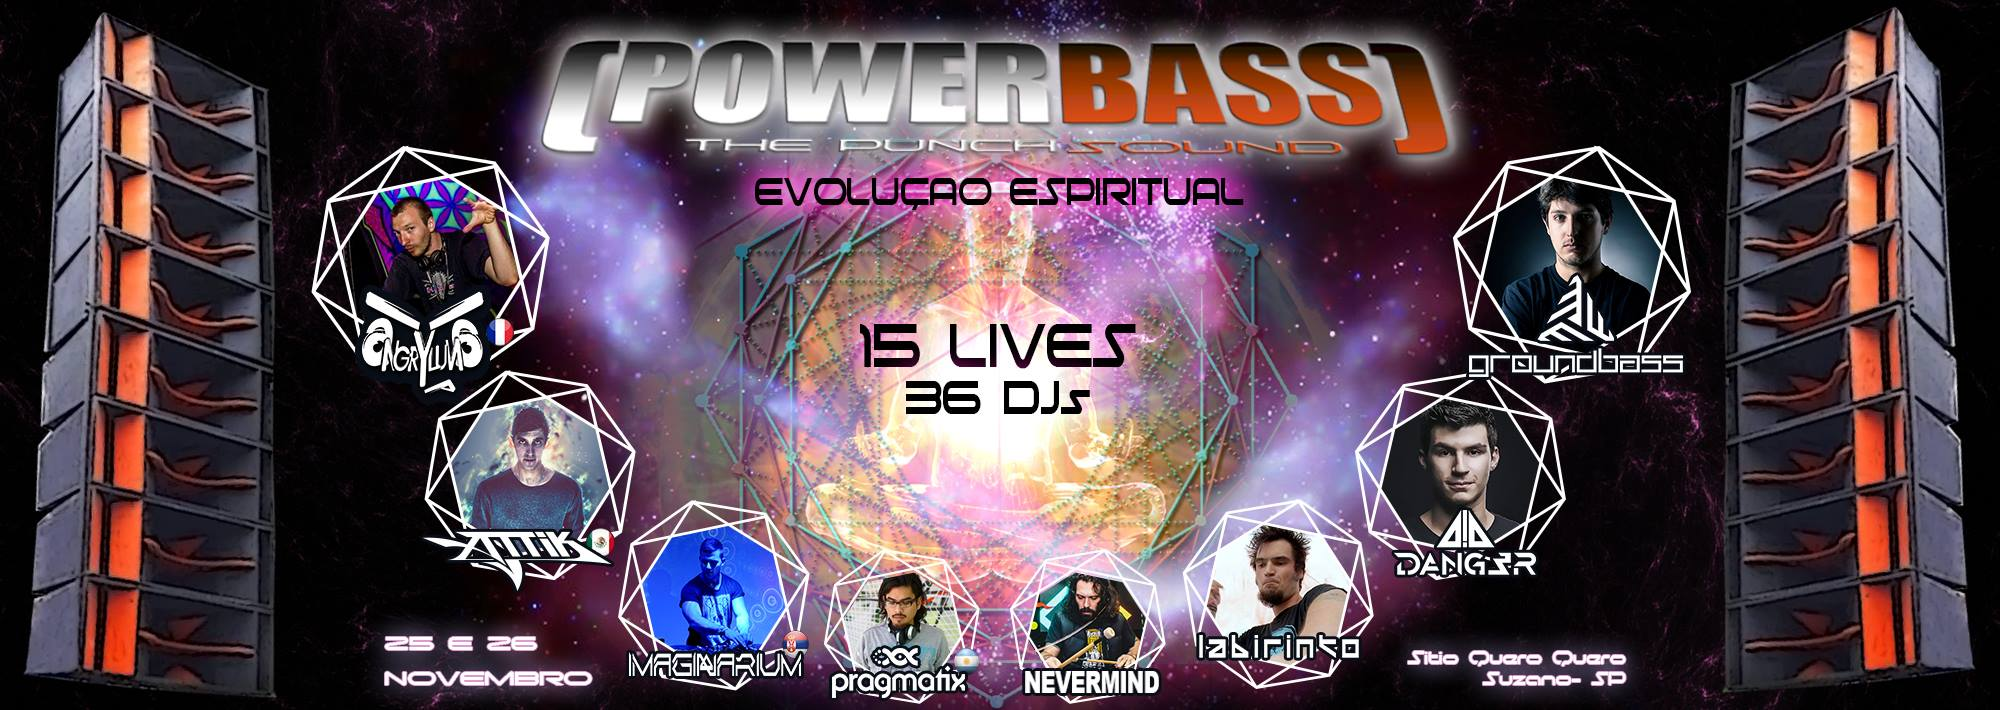 power bass progressive